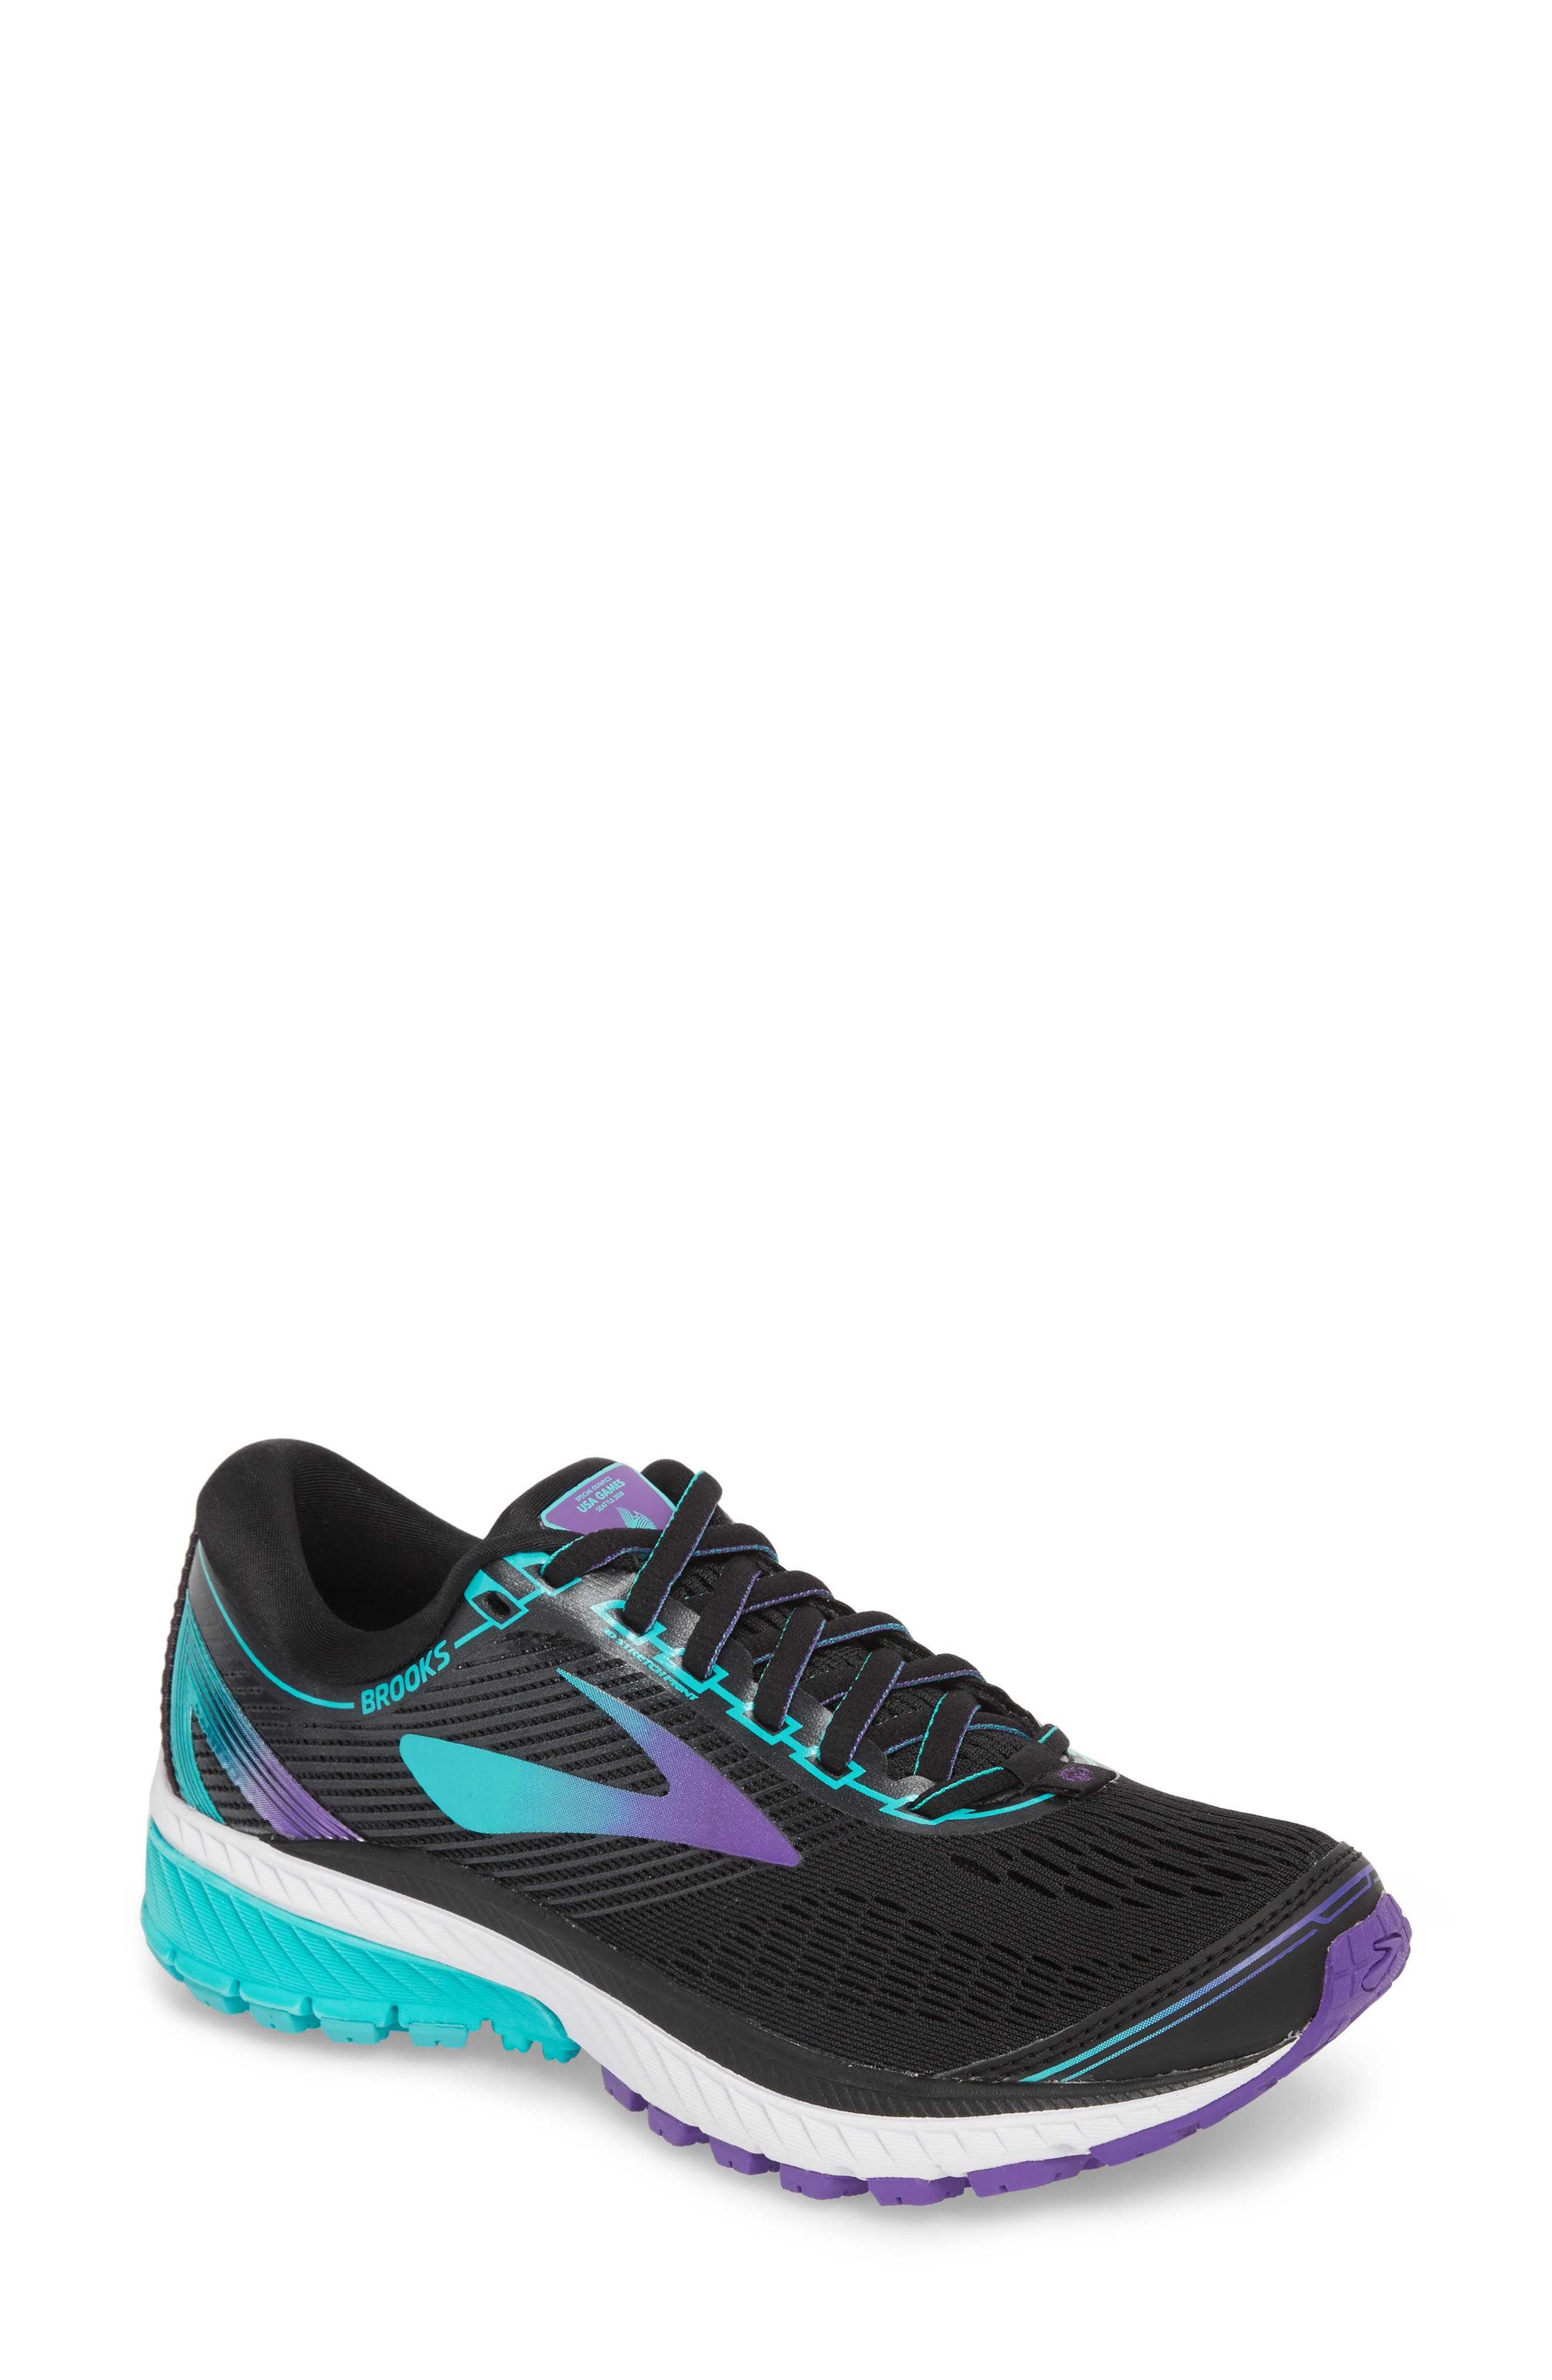 Ghost 10 Running Shoe,                         Main,                         color, 002